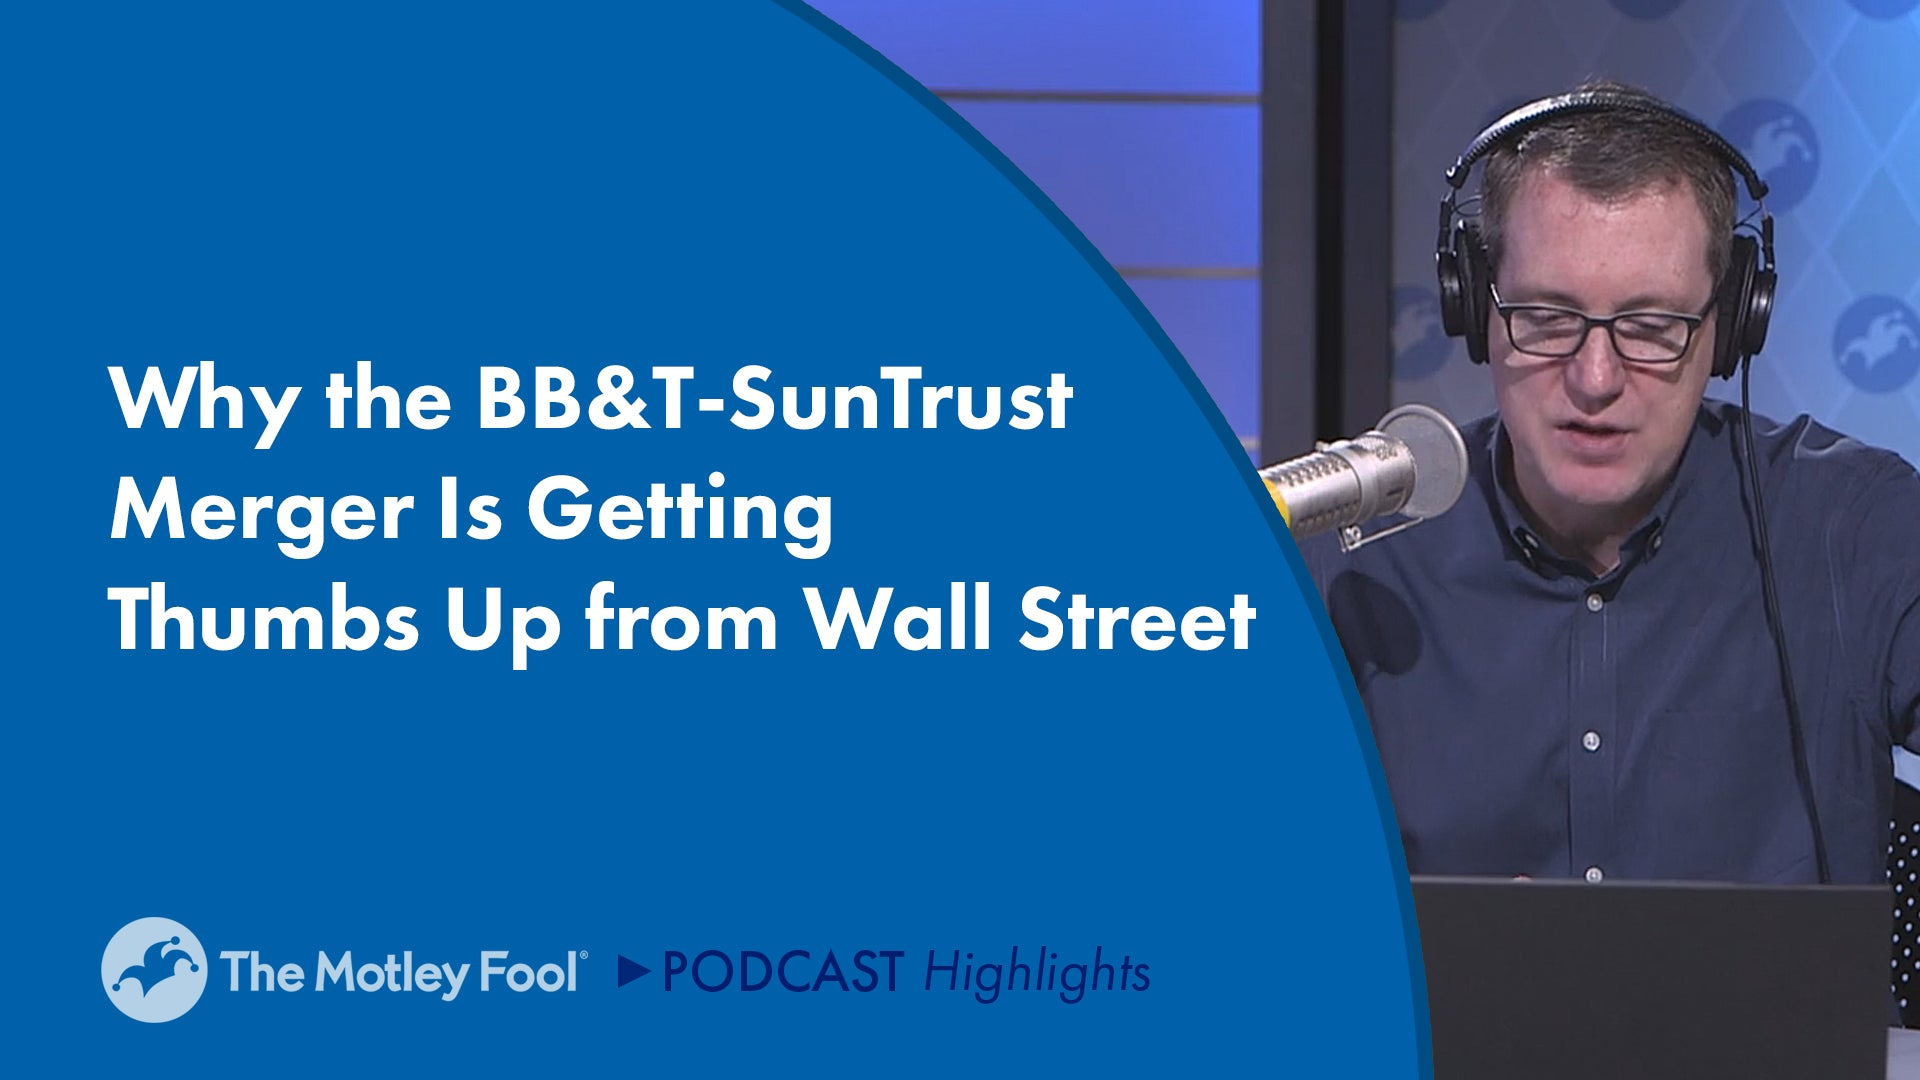 Why the BB&T-SunTrust Merger Is Getting a Thumbs-Up From Wall Street